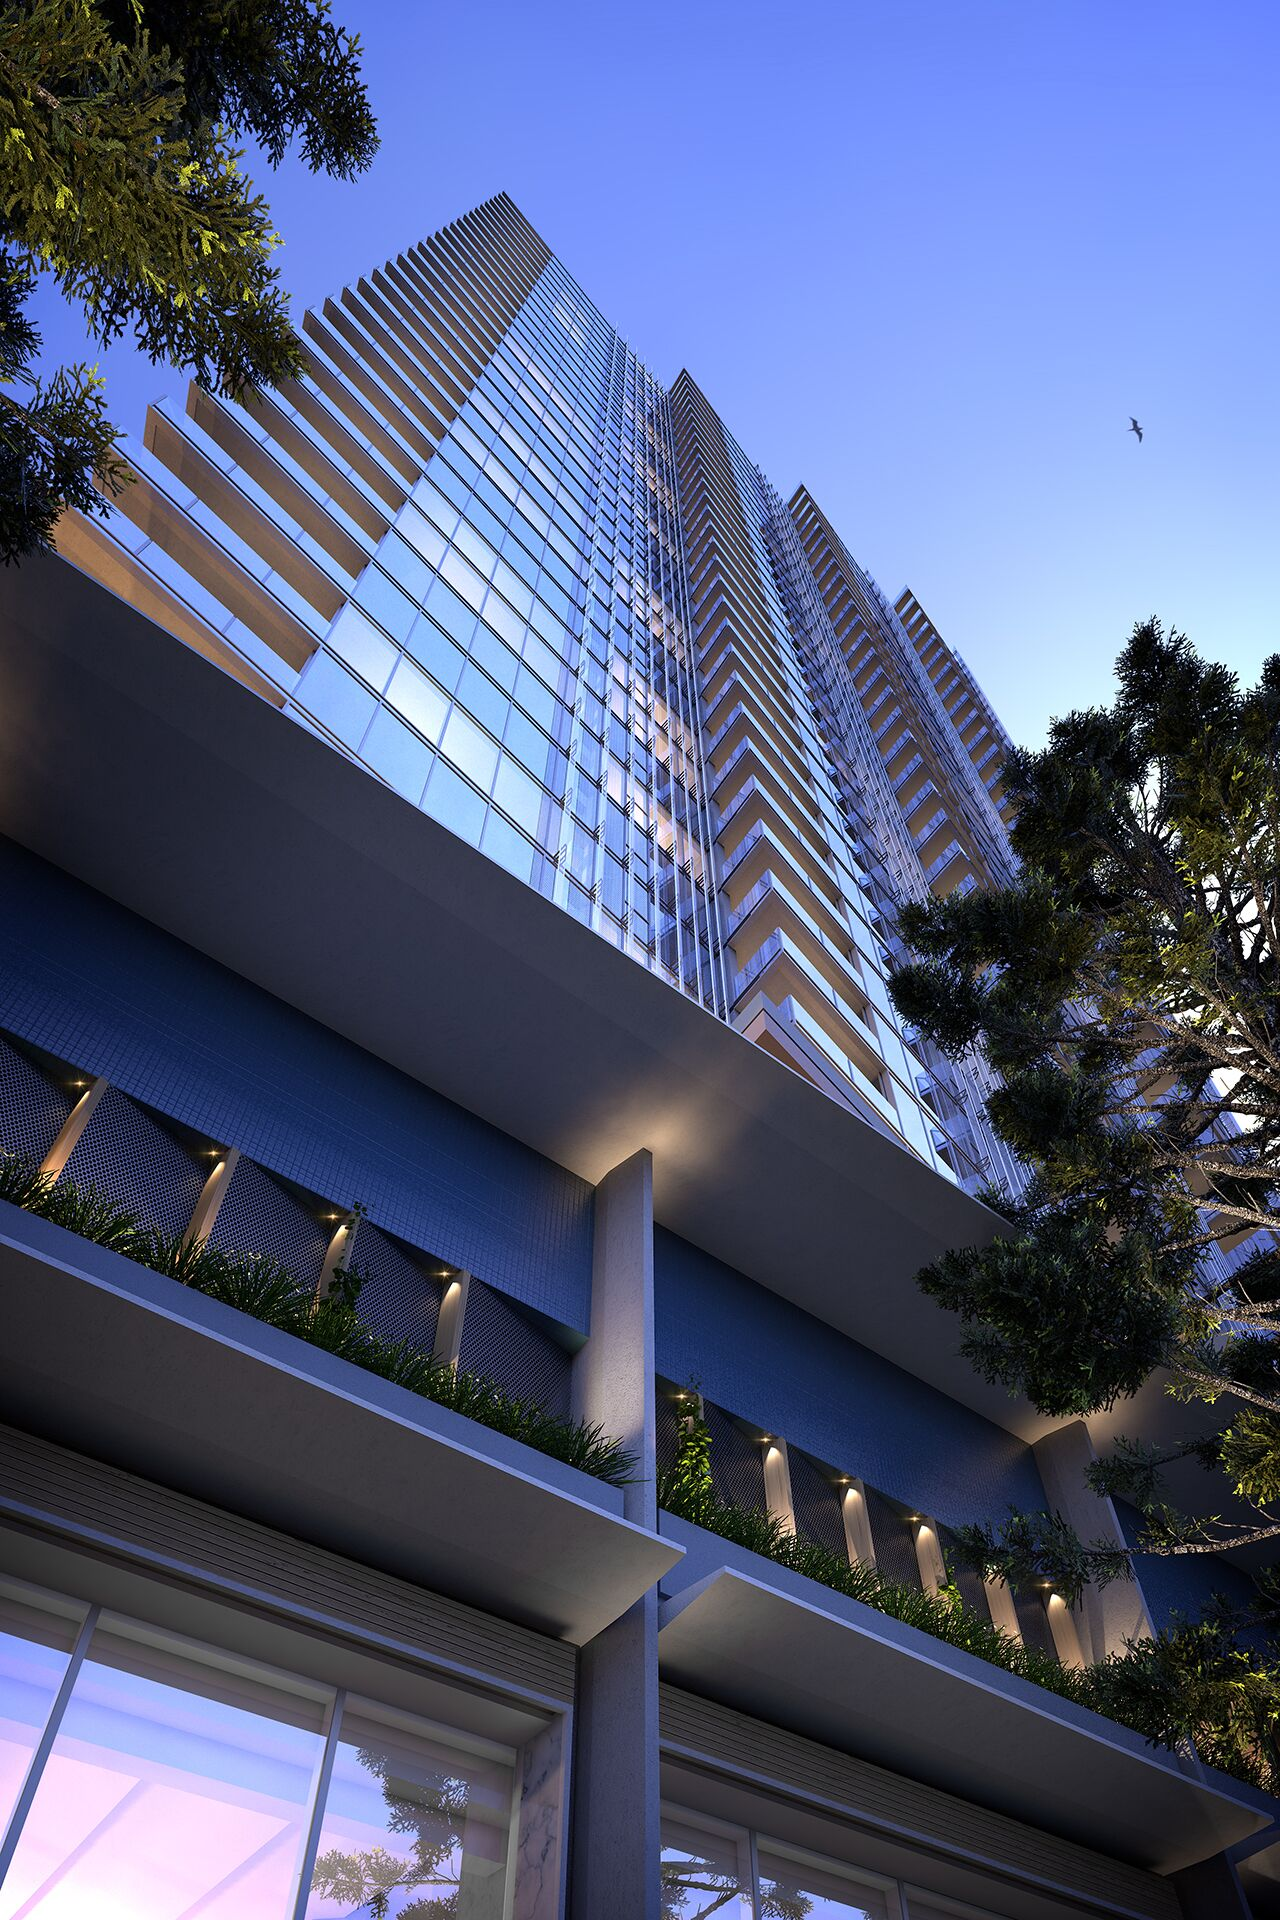 Signature Broadbeach, due for completion in late 2020, will feature a 50-metre infinity edge pool stretching along the northern edge of the building.